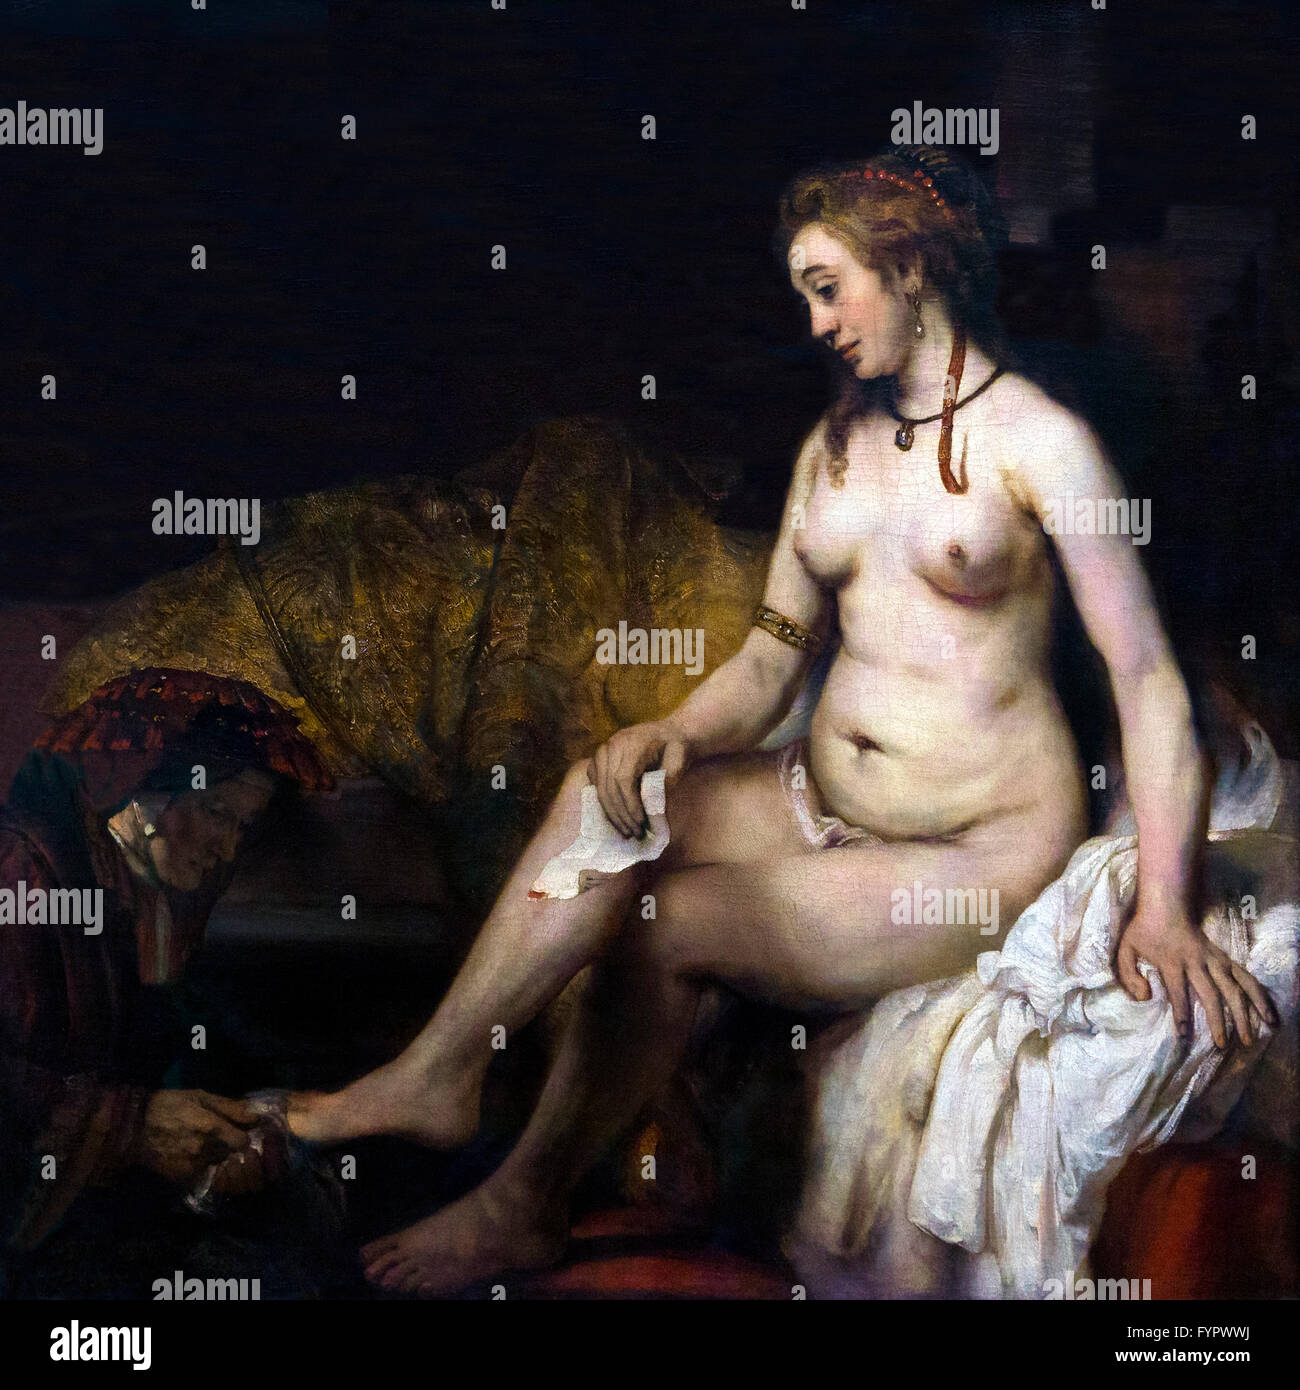 Bathing Bathsheba, Bathsheba in the bath holding David's letter, by Rembrandt, 1654, Musee du Louvre, Paris - Stock Image